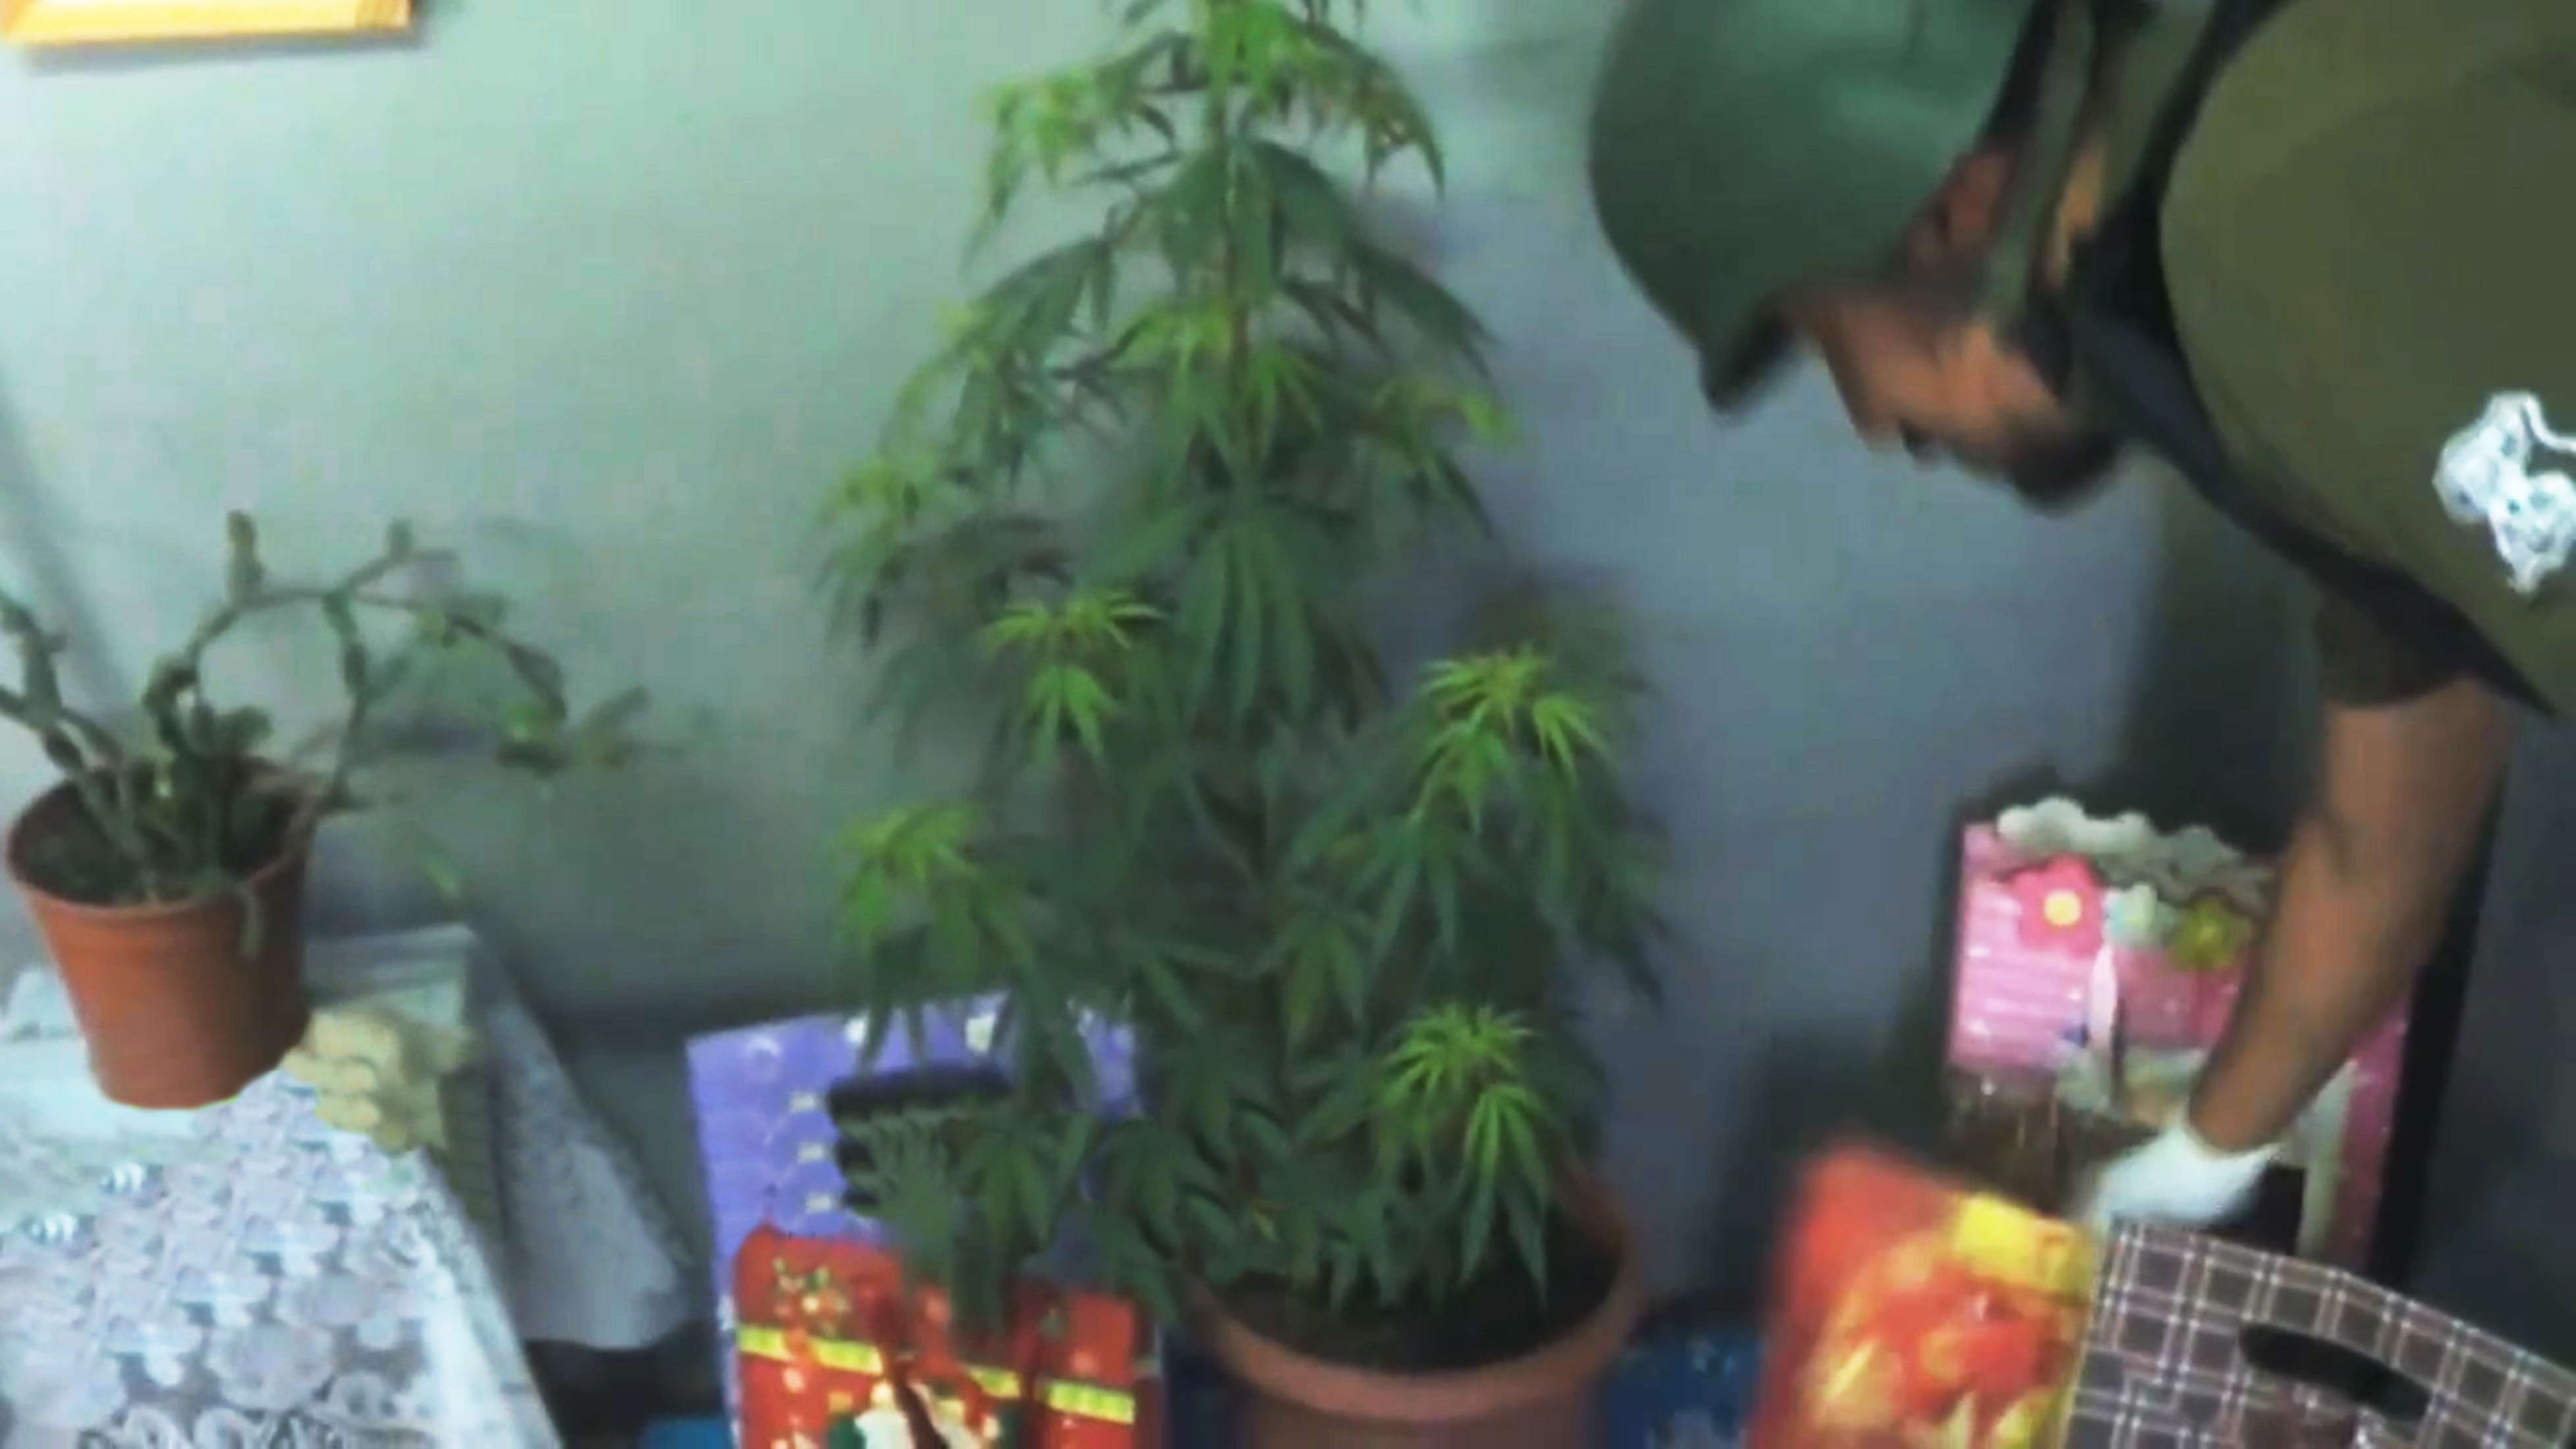 Mum is busted for using giant marijuana plant as Christmas tree